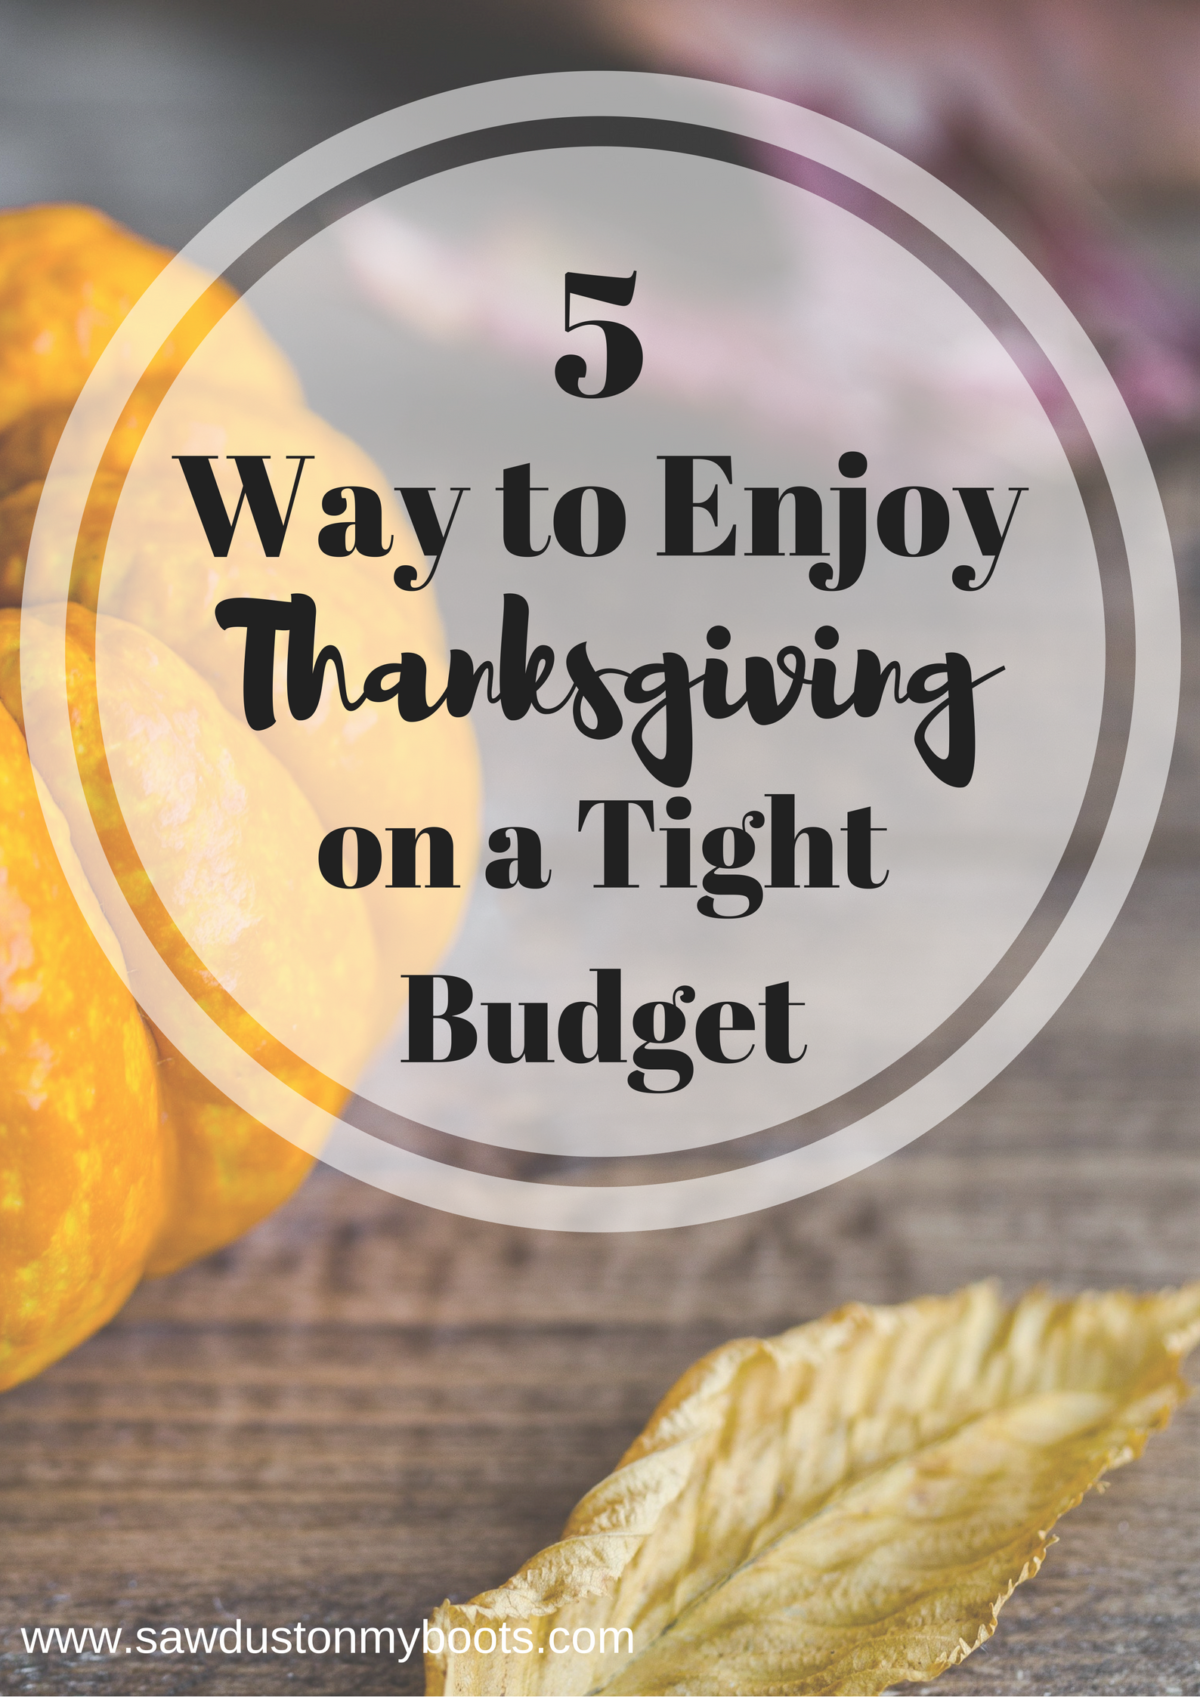 5 Ways to Enjoy Thanksgiving on a Tight Budget